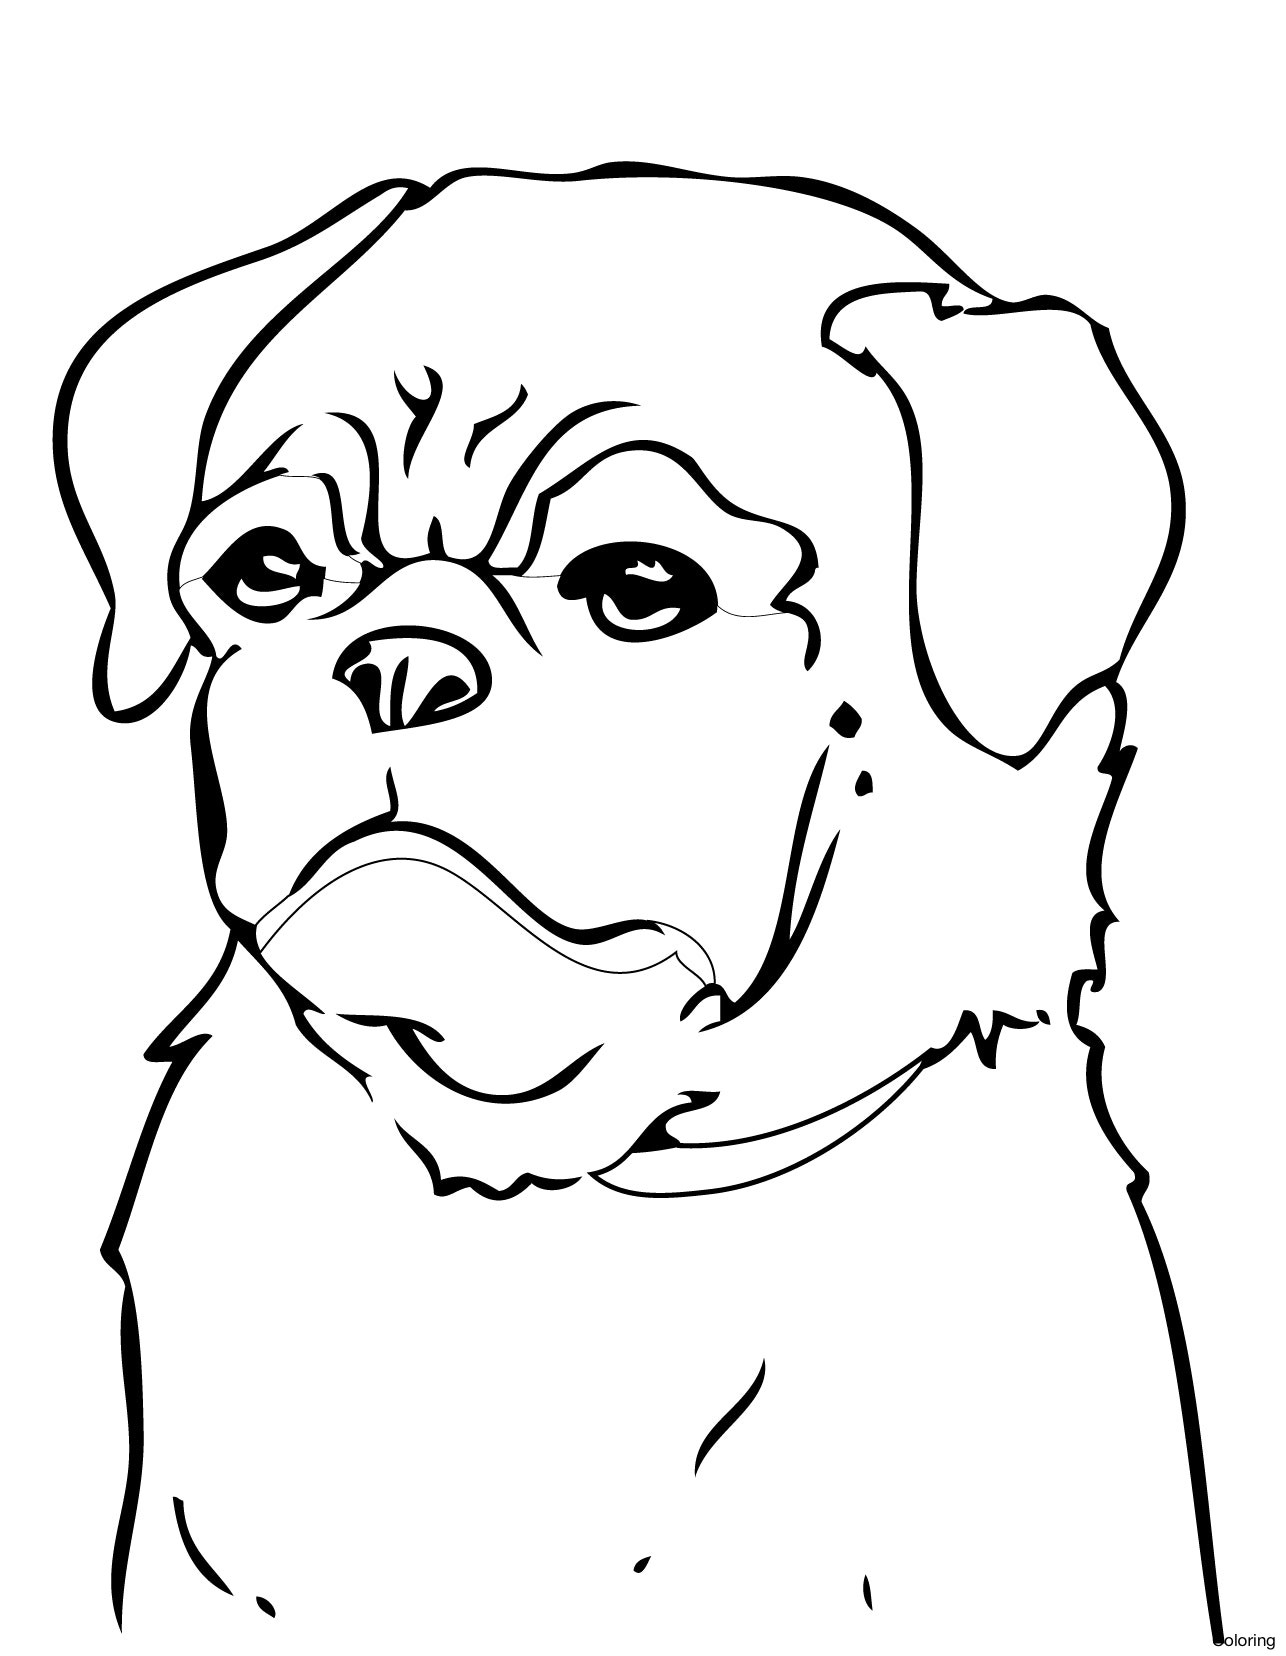 minecraft dog coloring pages minecraft dog drawing at getdrawings free download pages coloring dog minecraft